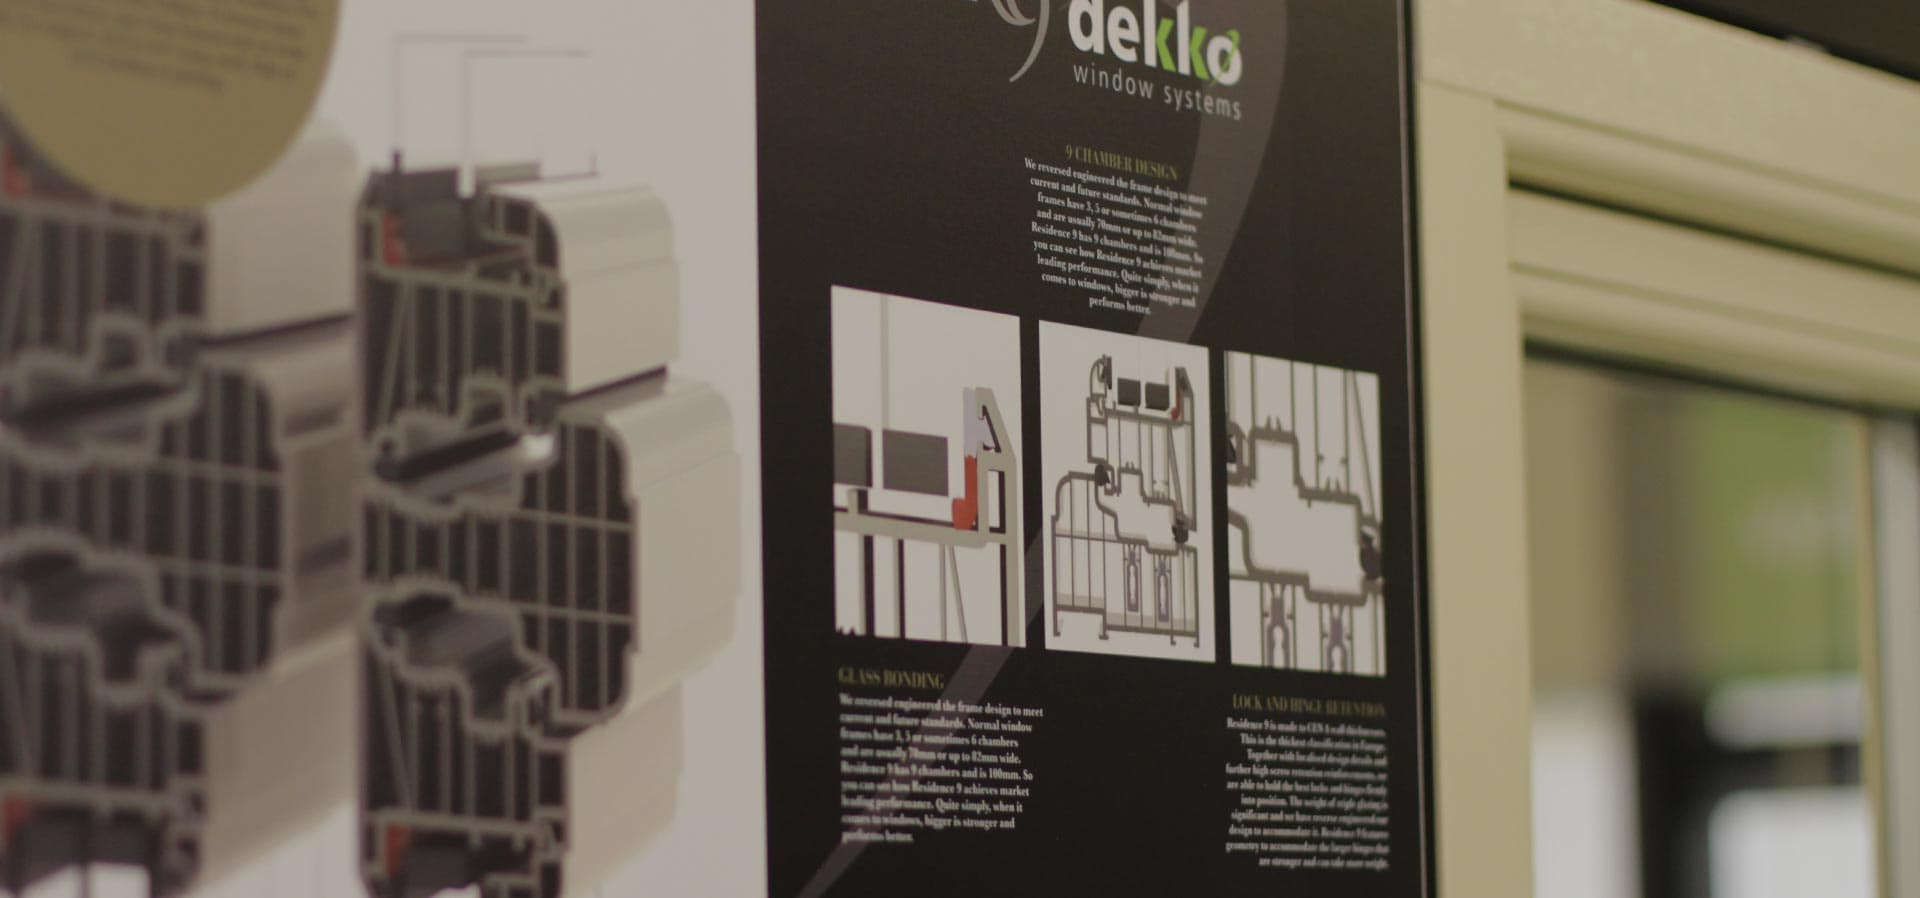 Product samples on display at the Dekko Trade Counter